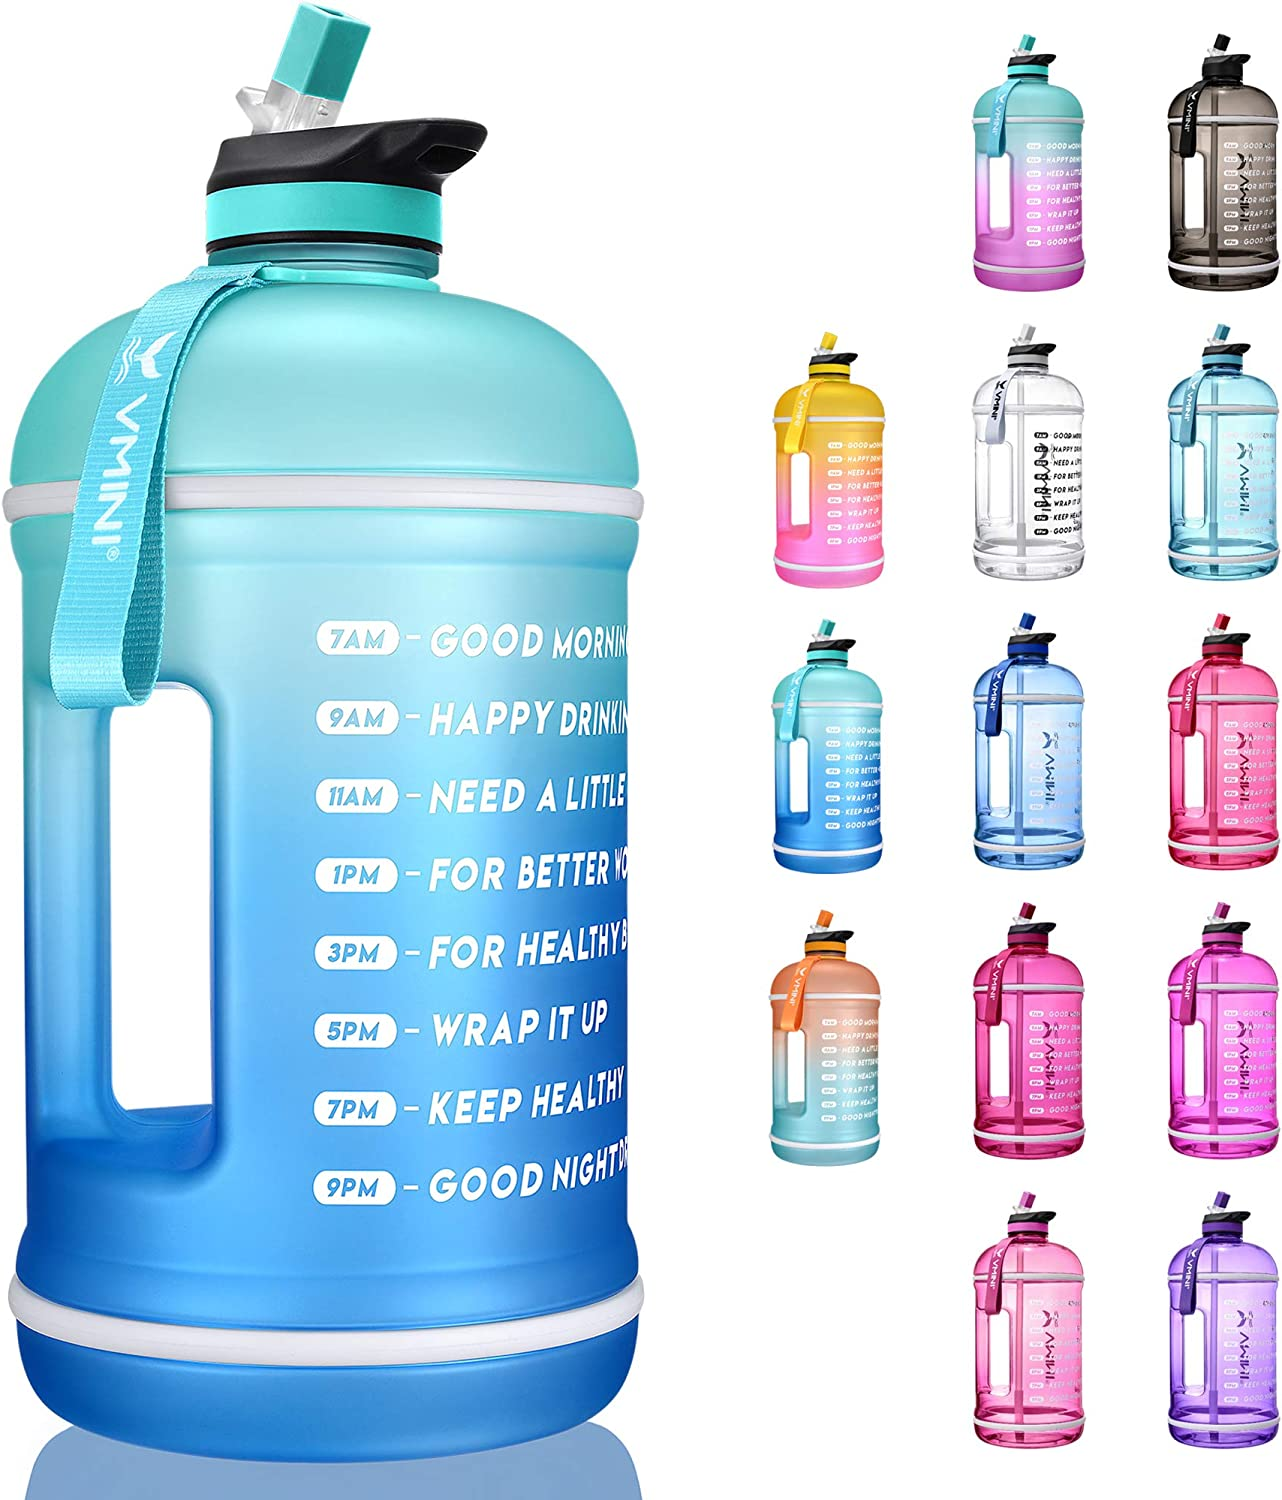 Vmini Water Bottle with Time Marker, Motivational Water Bottle & 1 Gallon Water Bottle with Time Marker to Drink More Daily - Leakproof Reusable Gym Sports Outdoor Large Capacity (128 oz, Mint+Blue)